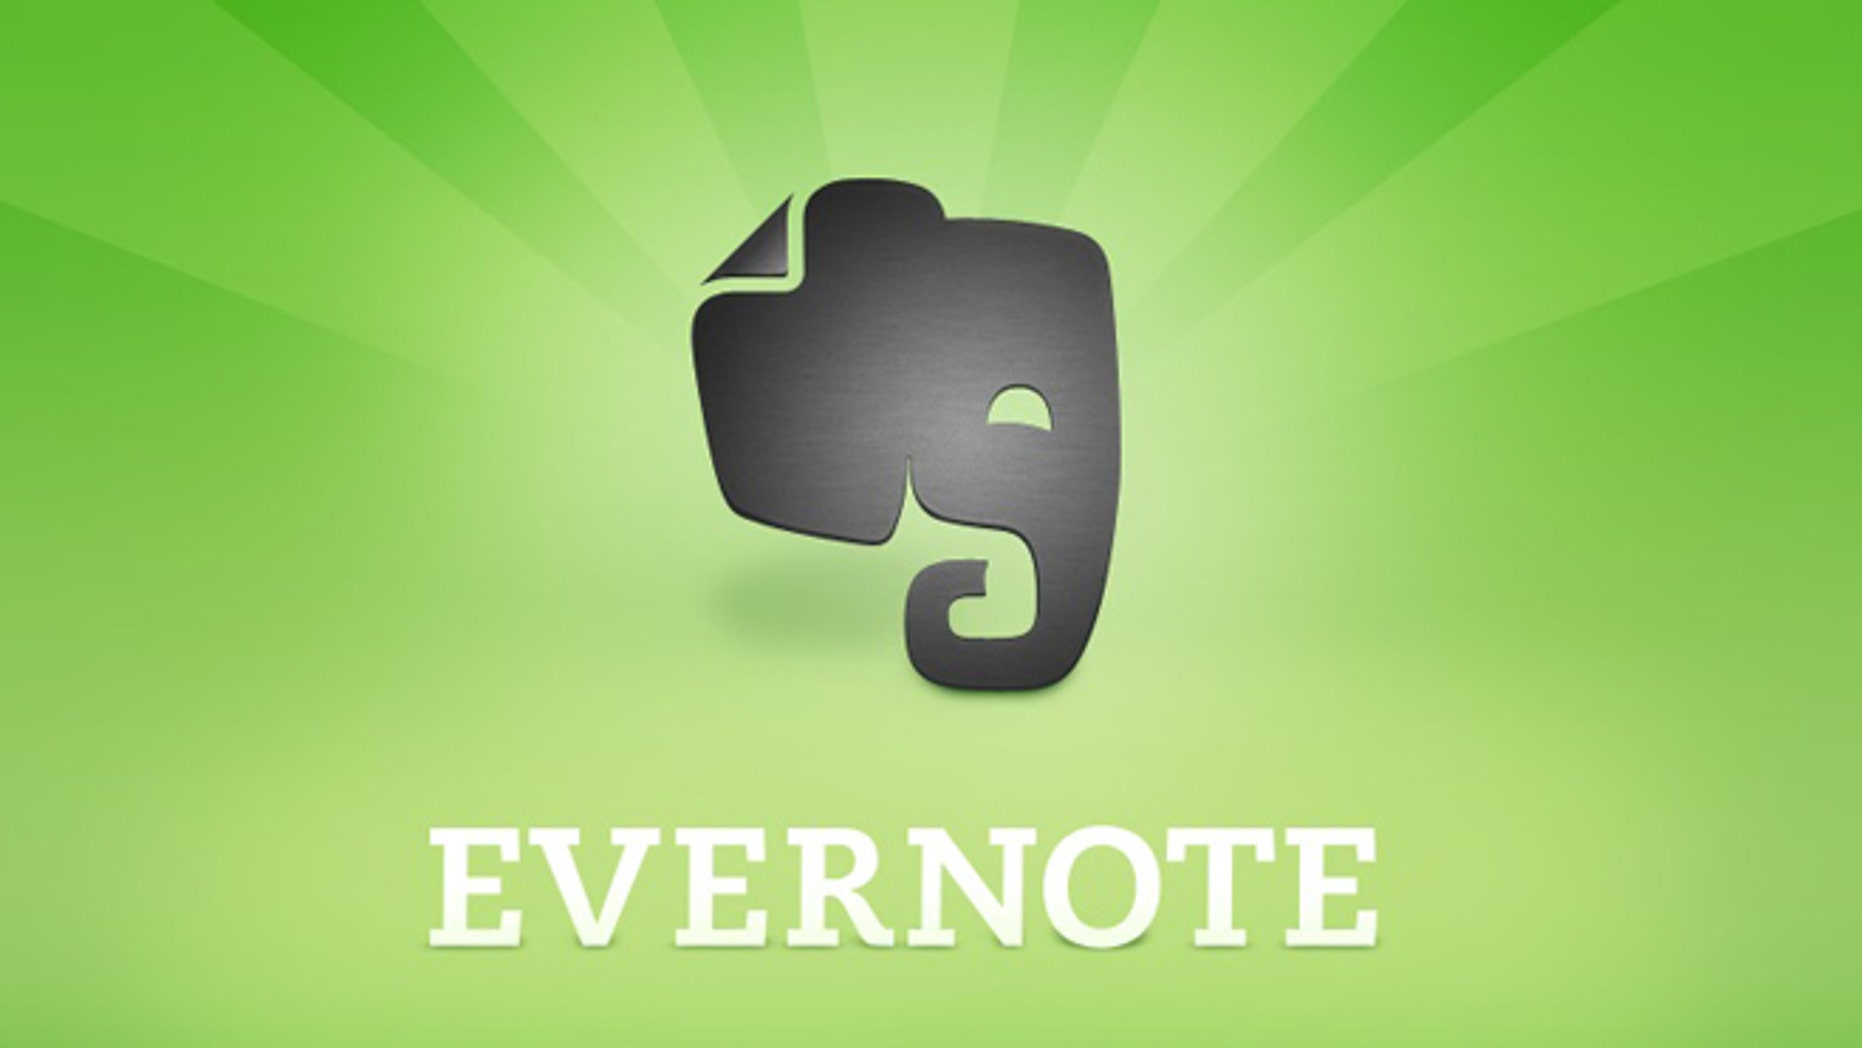 Online note-taking website Evernote reset the passwords for 50 million users after hackers breached its servers.